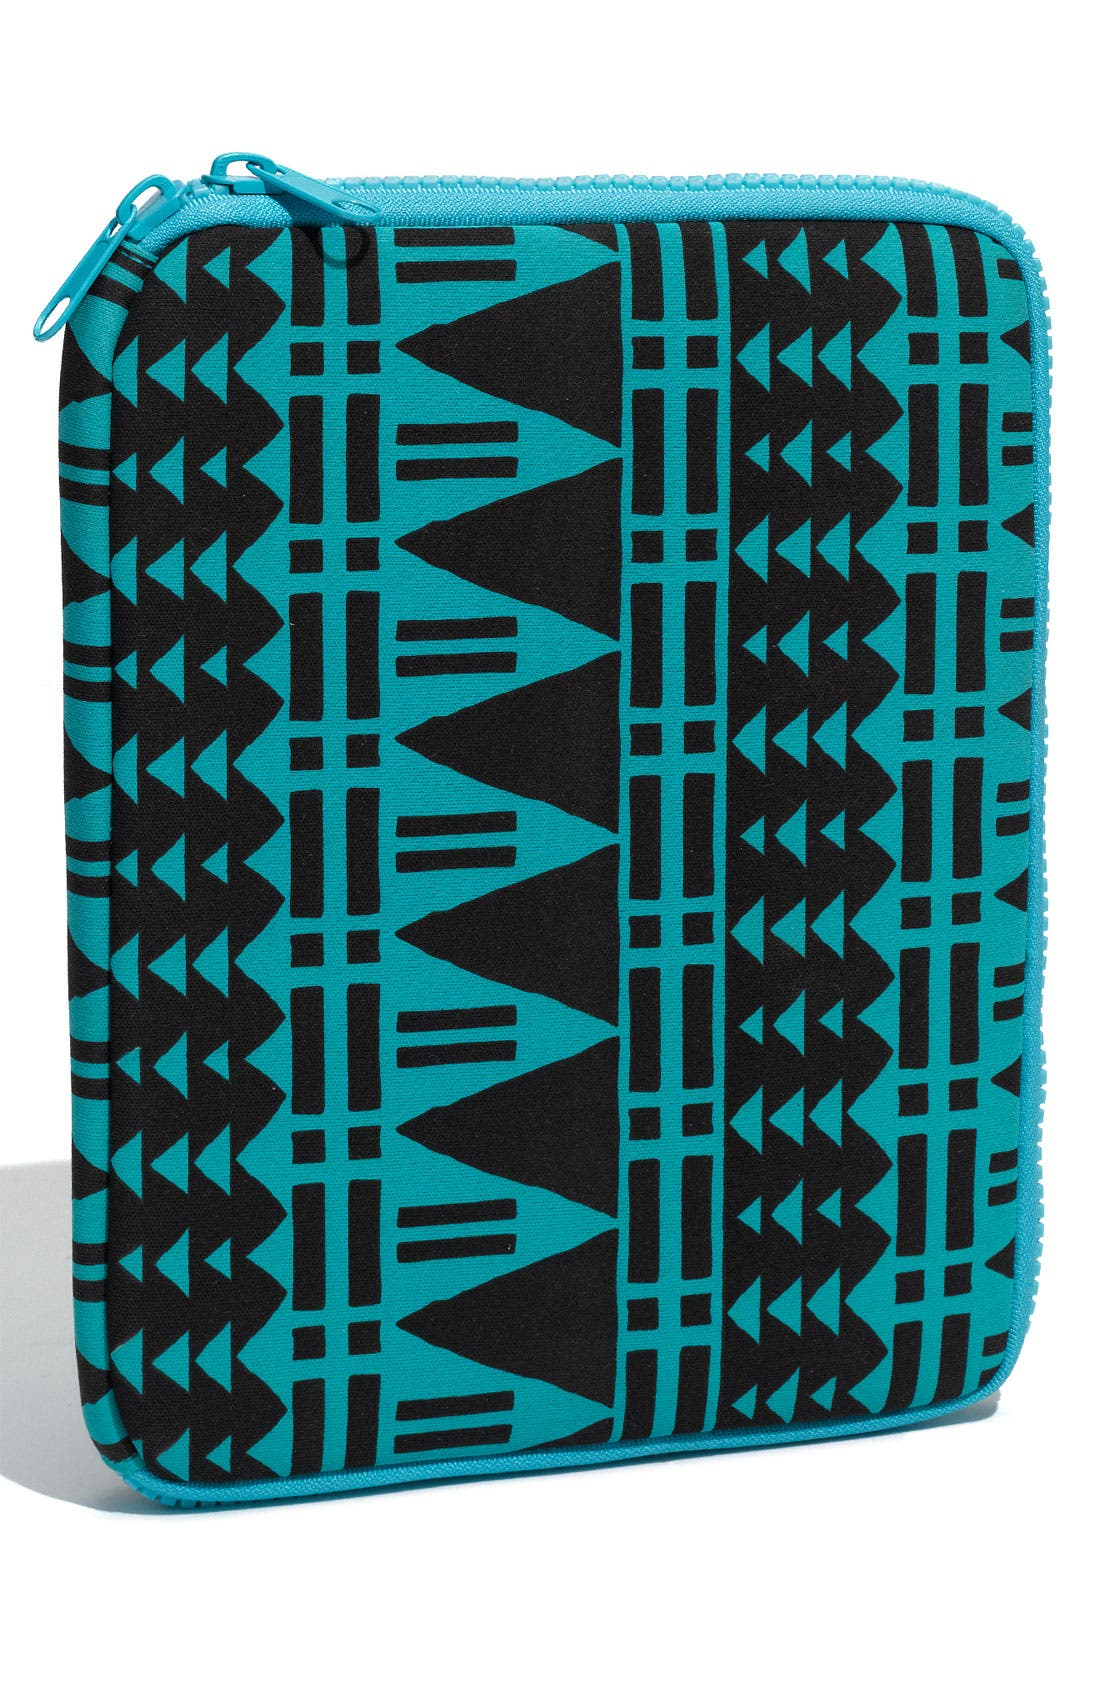 Main Image - Lulu Geometric Printed iPad Case